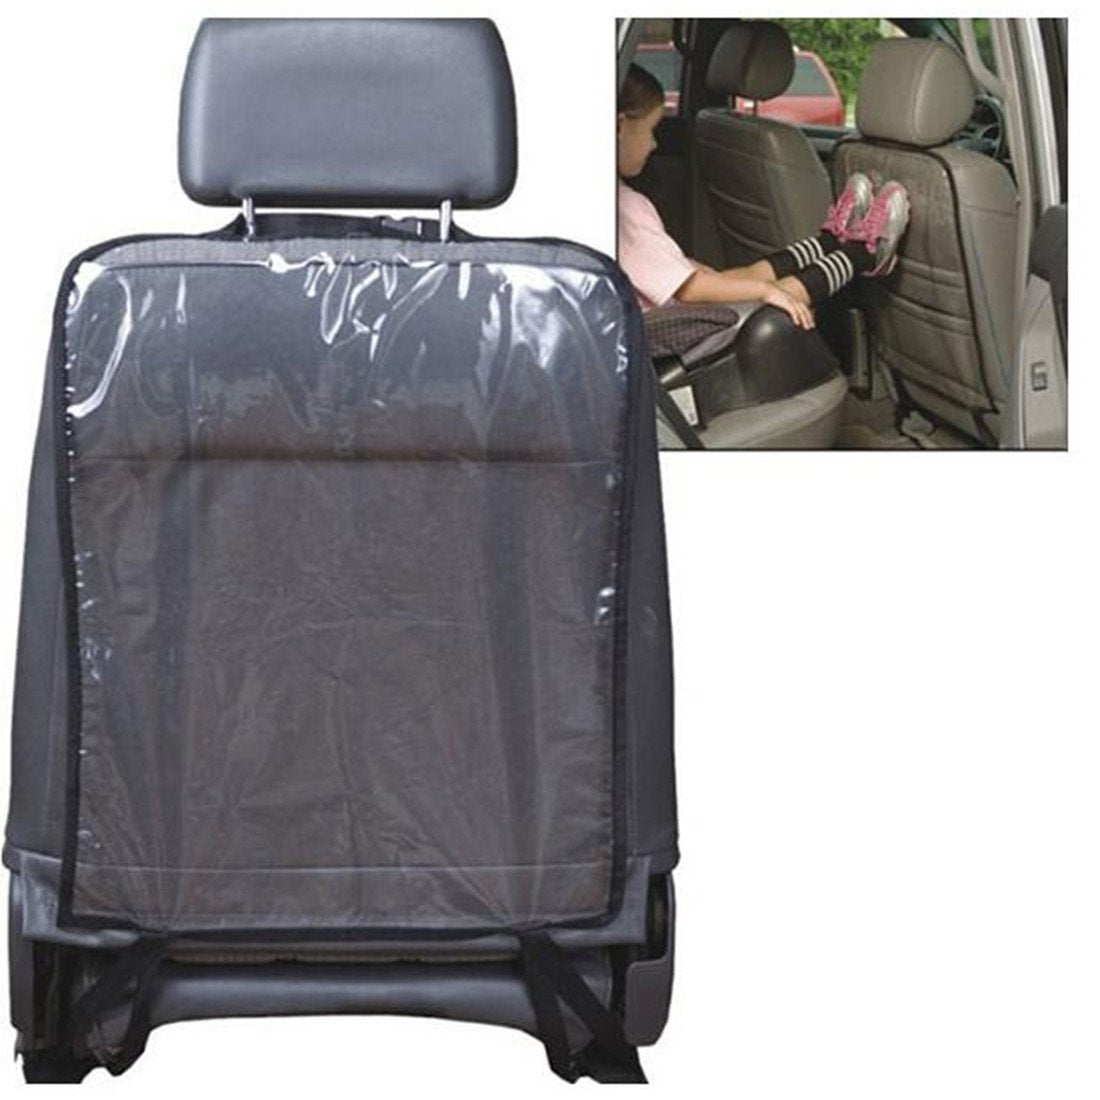 Car Auto Seat Back Protector Cover Back Seat For Children Babies Kick Mat Protects From Mud Dirt